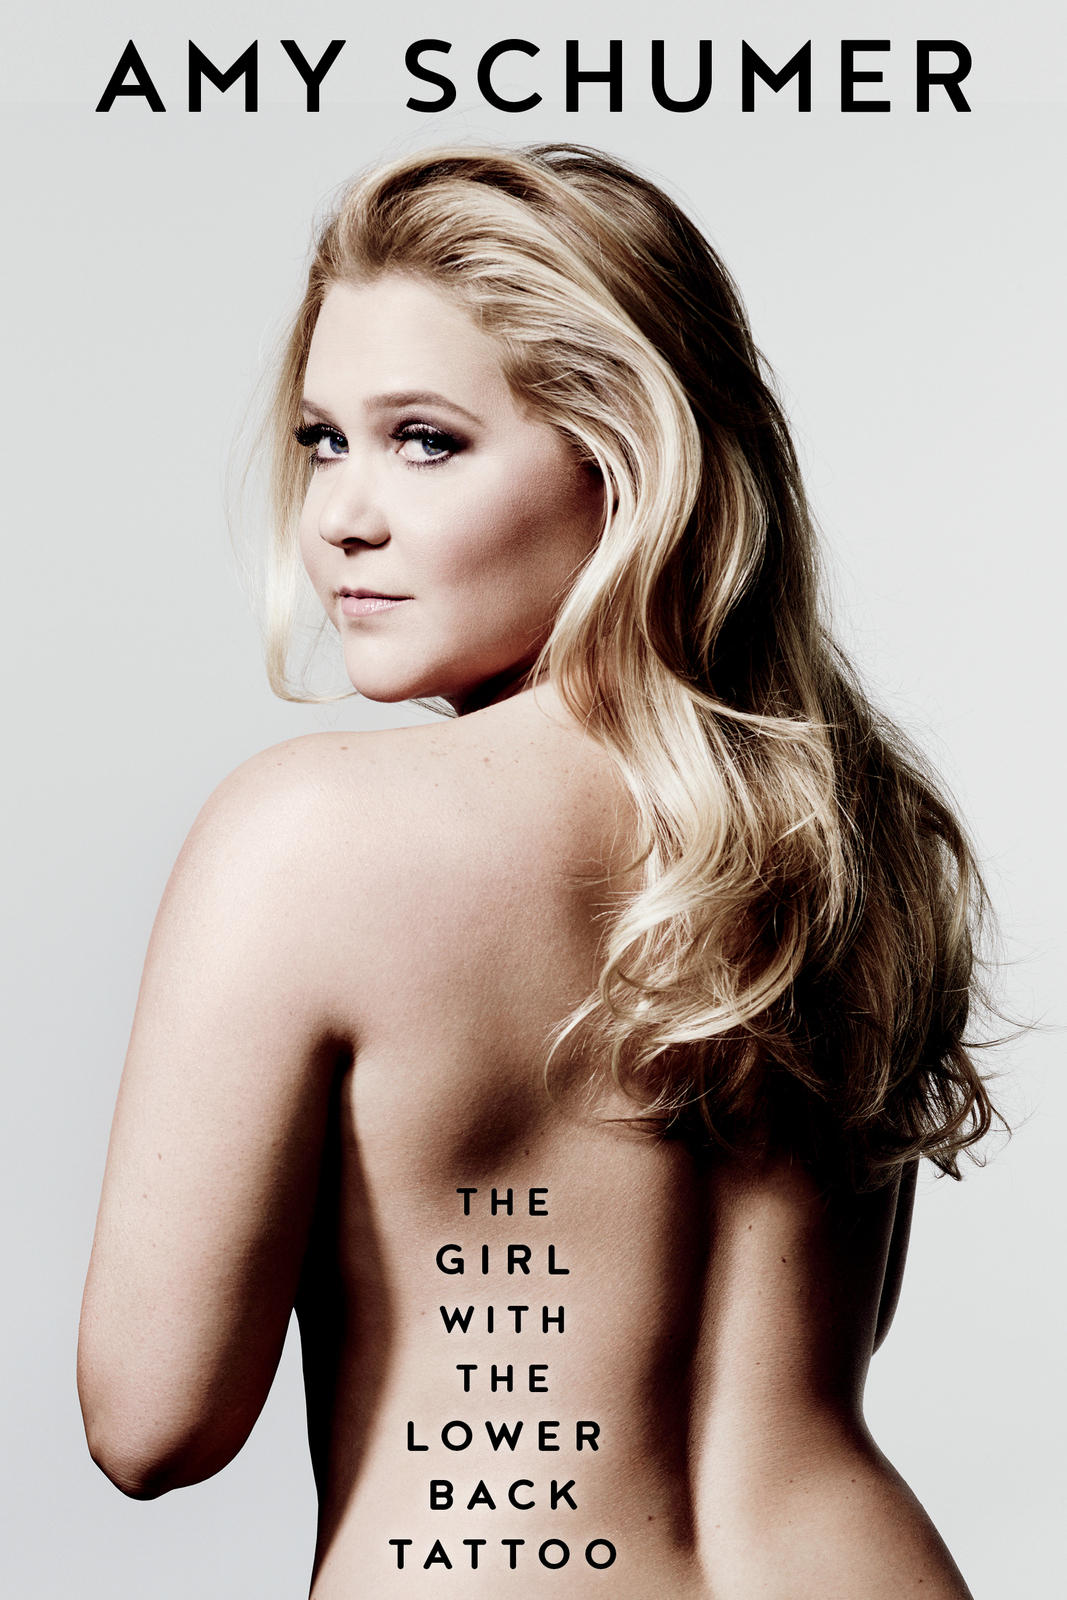 The Girl with the Lower Back Tattoo by Amy Schumer image